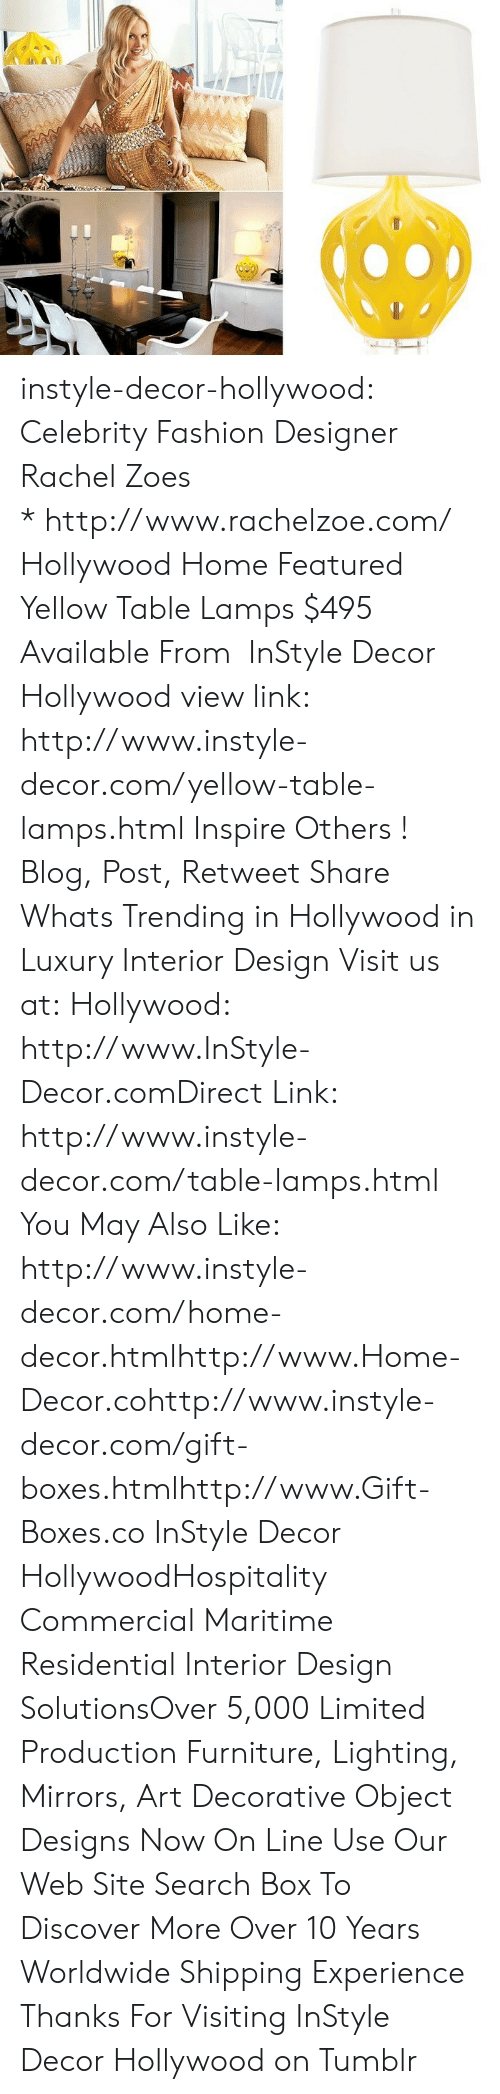 Inspire Others: instyle-decor-hollywood:  Celebrity Fashion Designer Rachel Zoes *http://www.rachelzoe.com/ Hollywood Home Featured Yellow Table Lamps $495 Available From InStyle Decor Hollywood view link: http://www.instyle-decor.com/yellow-table-lamps.html Inspire Others ! Blog, Post, Retweet  Share Whats Trending in Hollywood in Luxury Interior Design  Visit us at: Hollywood: http://www.InStyle-Decor.comDirect Link: http://www.instyle-decor.com/table-lamps.html You May Also Like: http://www.instyle-decor.com/home-decor.htmlhttp://www.Home-Decor.cohttp://www.instyle-decor.com/gift-boxes.htmlhttp://www.Gift-Boxes.co InStyle Decor HollywoodHospitality Commercial Maritime  Residential Interior Design SolutionsOver 5,000 Limited Production Furniture, Lighting, Mirrors, Art  Decorative Object Designs Now On Line Use Our Web Site Search Box To Discover More Over 10 Years Worldwide Shipping Experience Thanks For Visiting InStyle Decor Hollywood on Tumblr